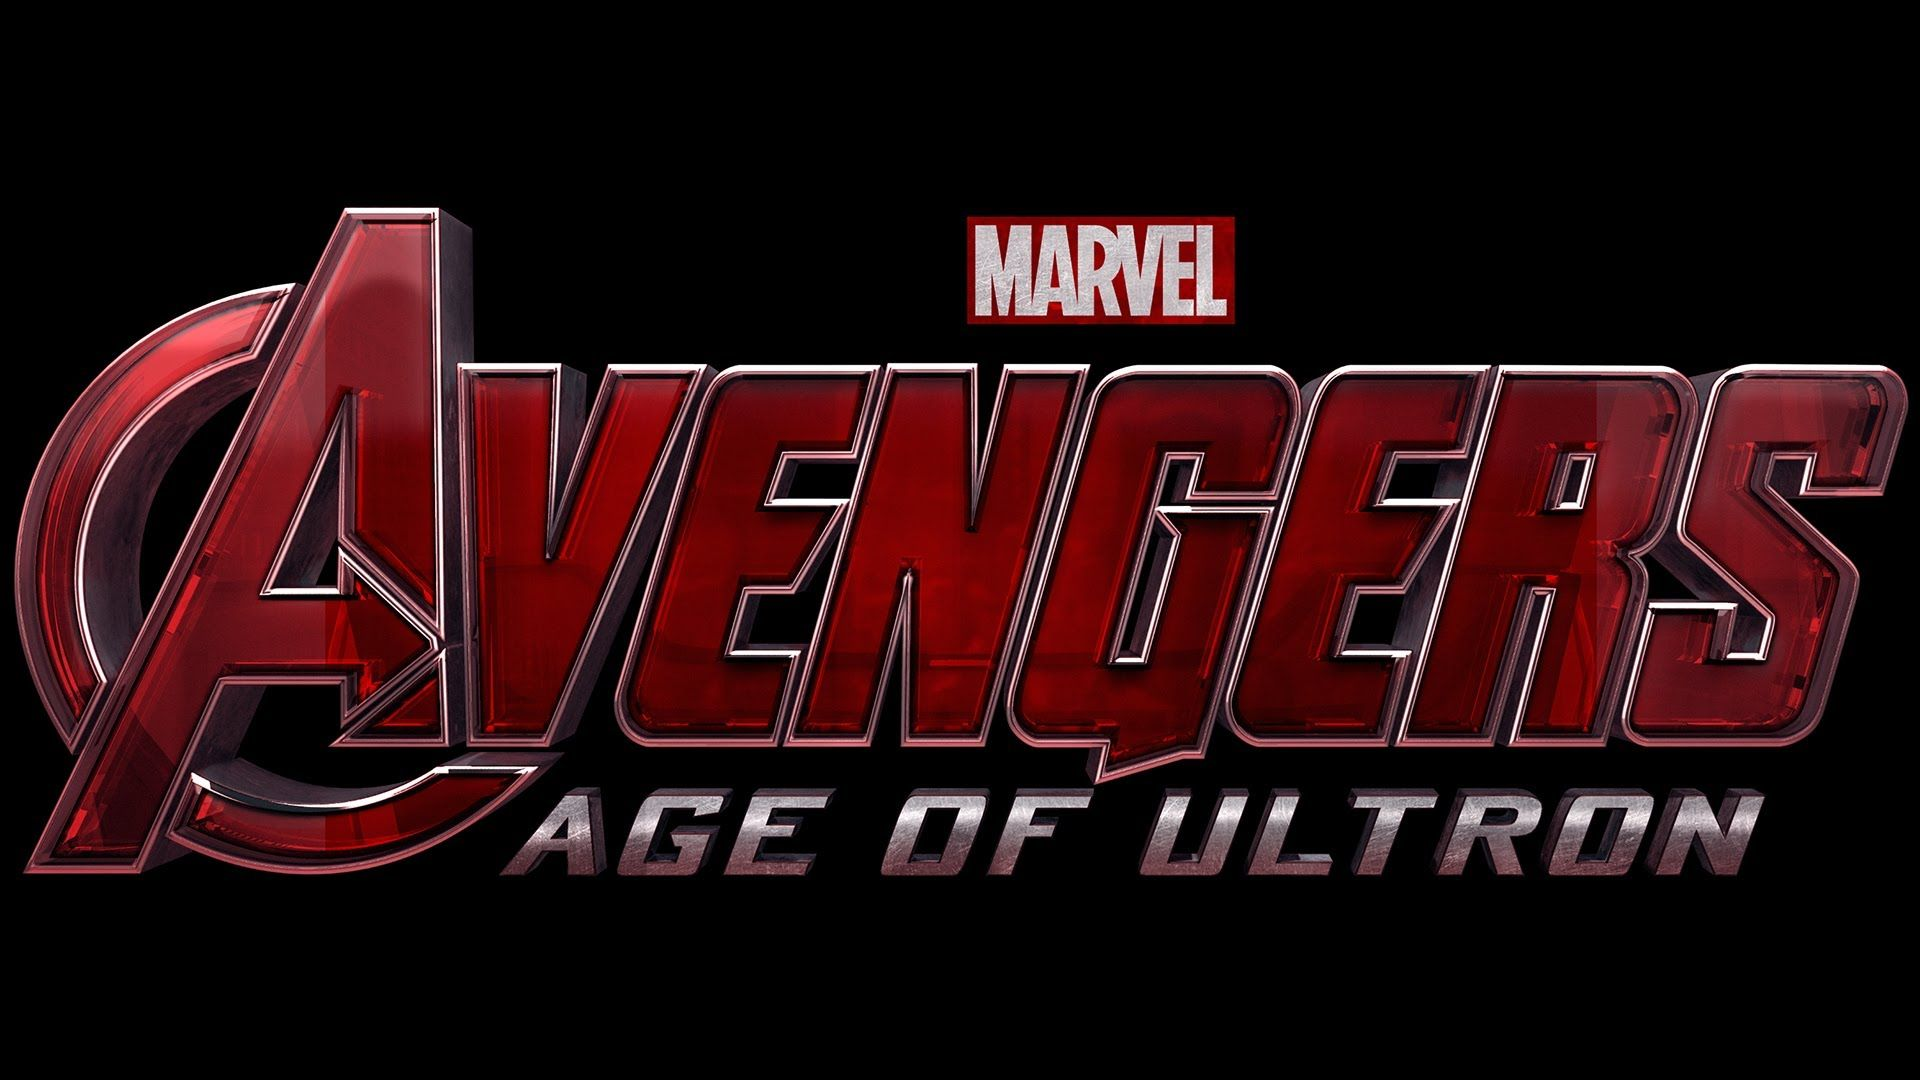 The Avengers Age Of Ultron Soundtrack - Heroes Fall | Main Theme (Fan-Made)